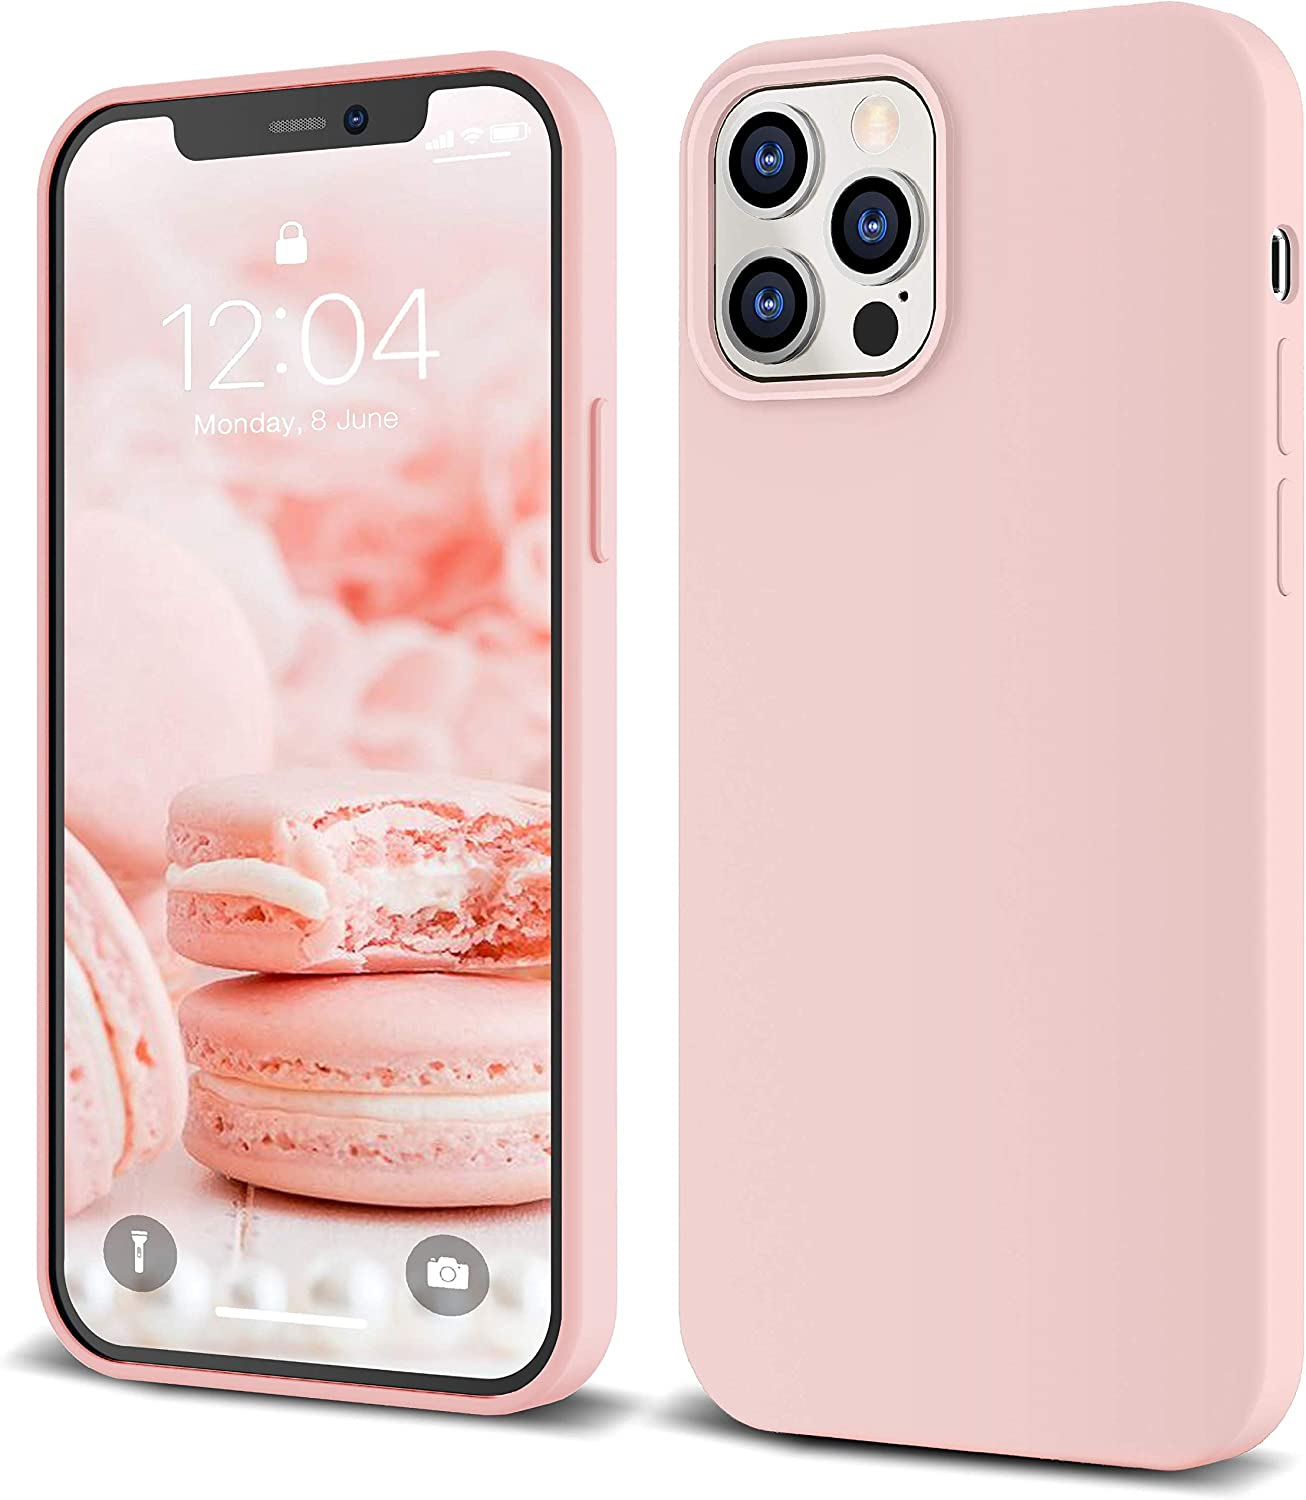 """IceSword iPhone 12 Pro Max Case 6.7"""" (2020) Pink Sand, Thin Liquid Silicone Case, Soft Silk Microfiber Cloth, Matte Pure Cute Pink, Gel Rubber Full Body, Protective Shockproof Pro Max 6.7"""